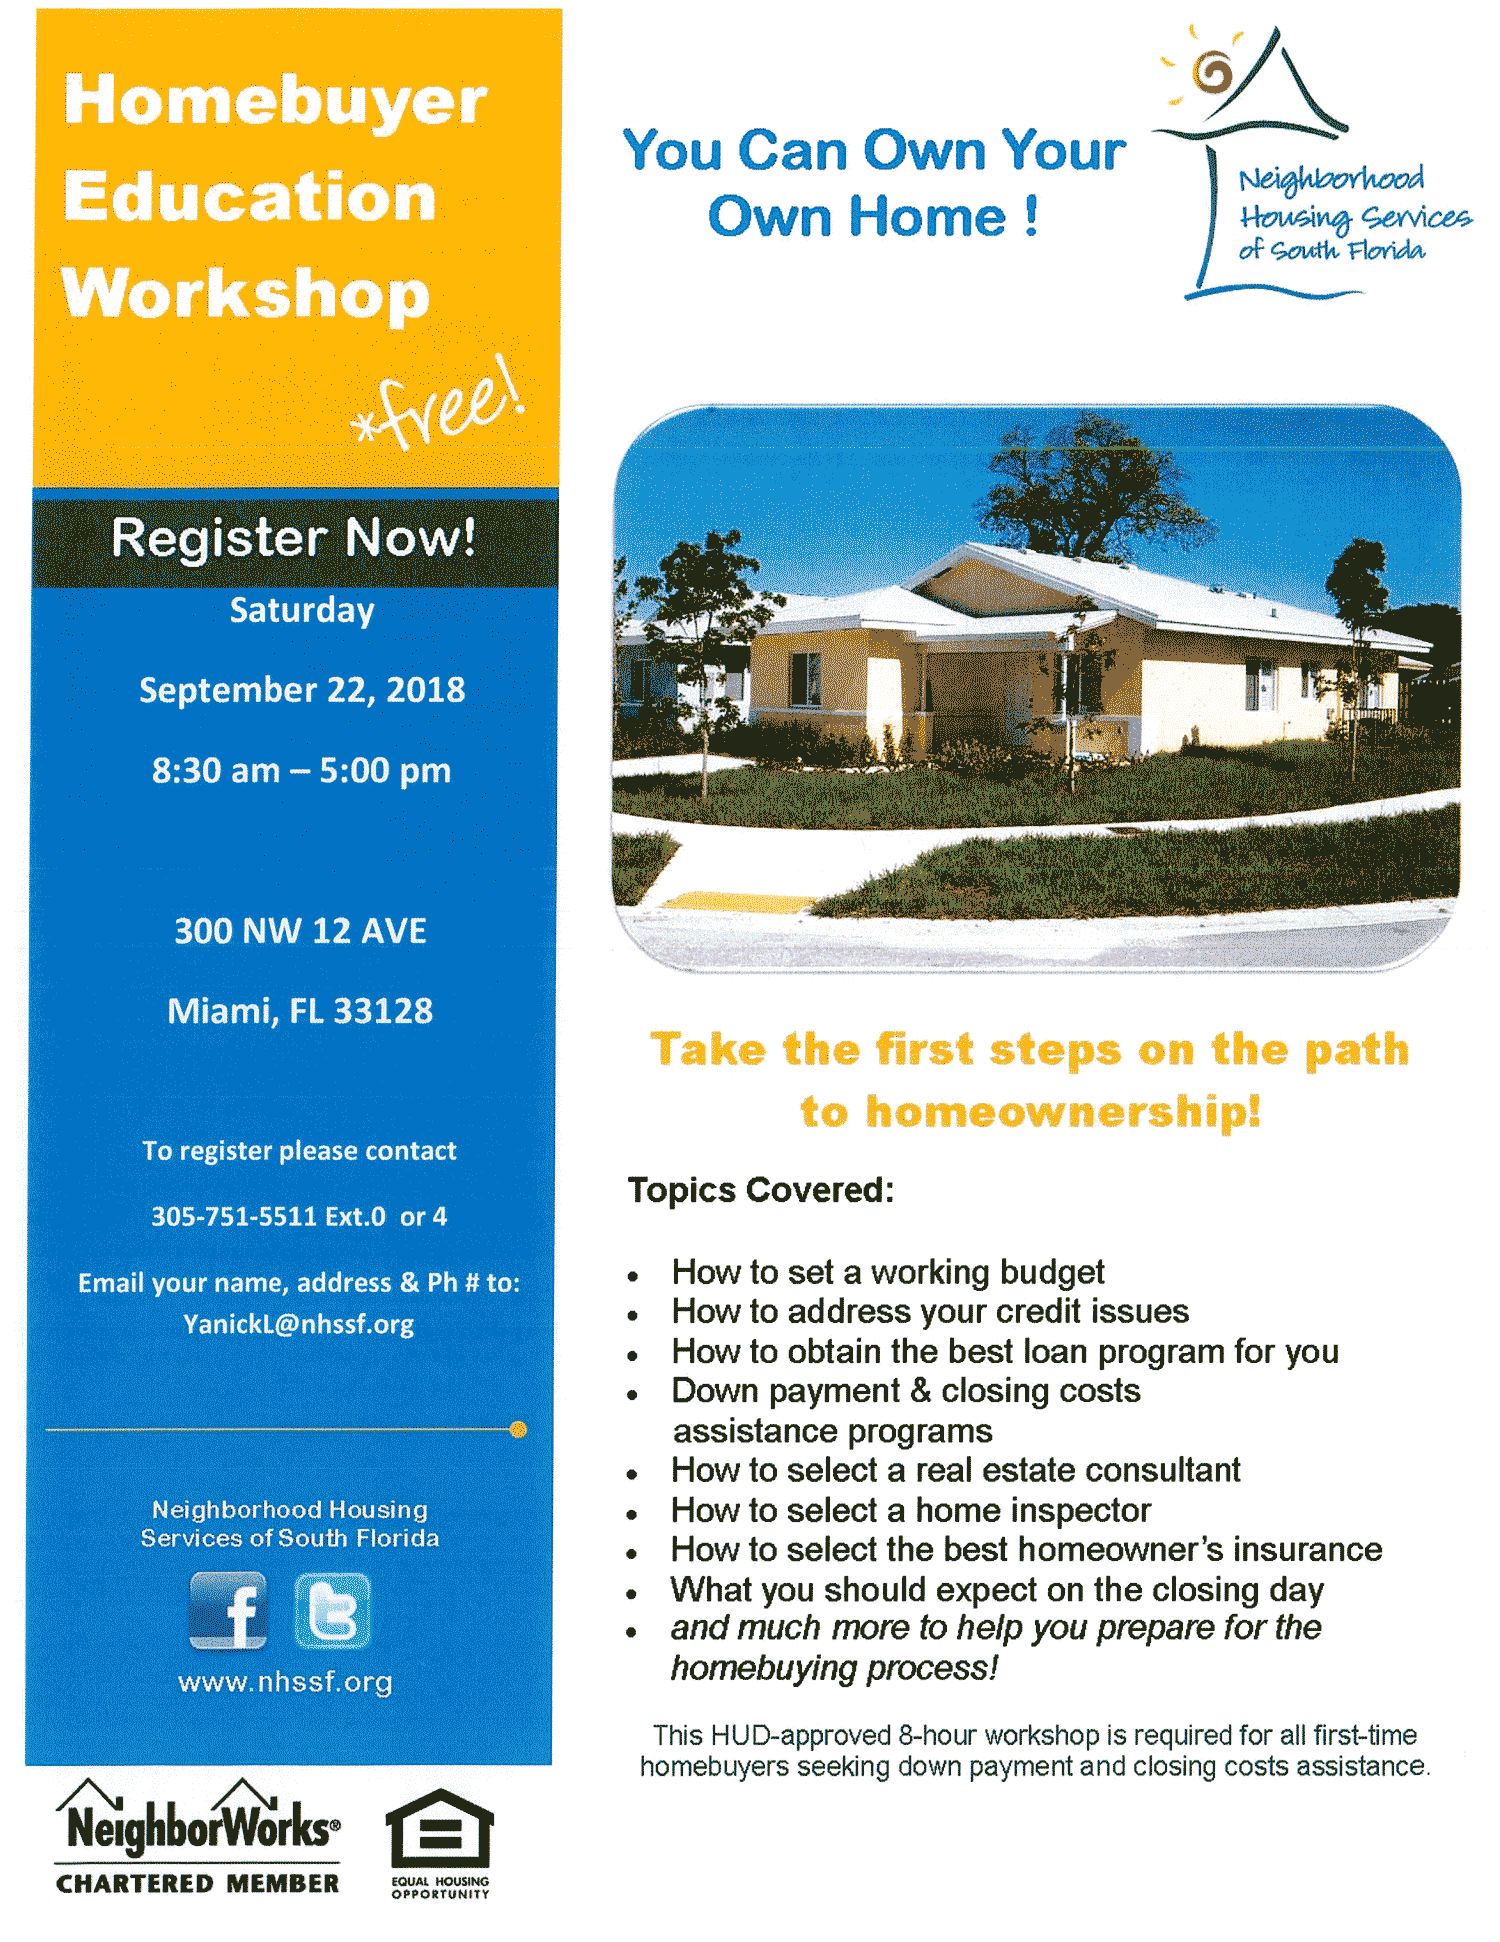 flyer for Homebuyer Education Workshop in Miami-Dade on 9-22-18